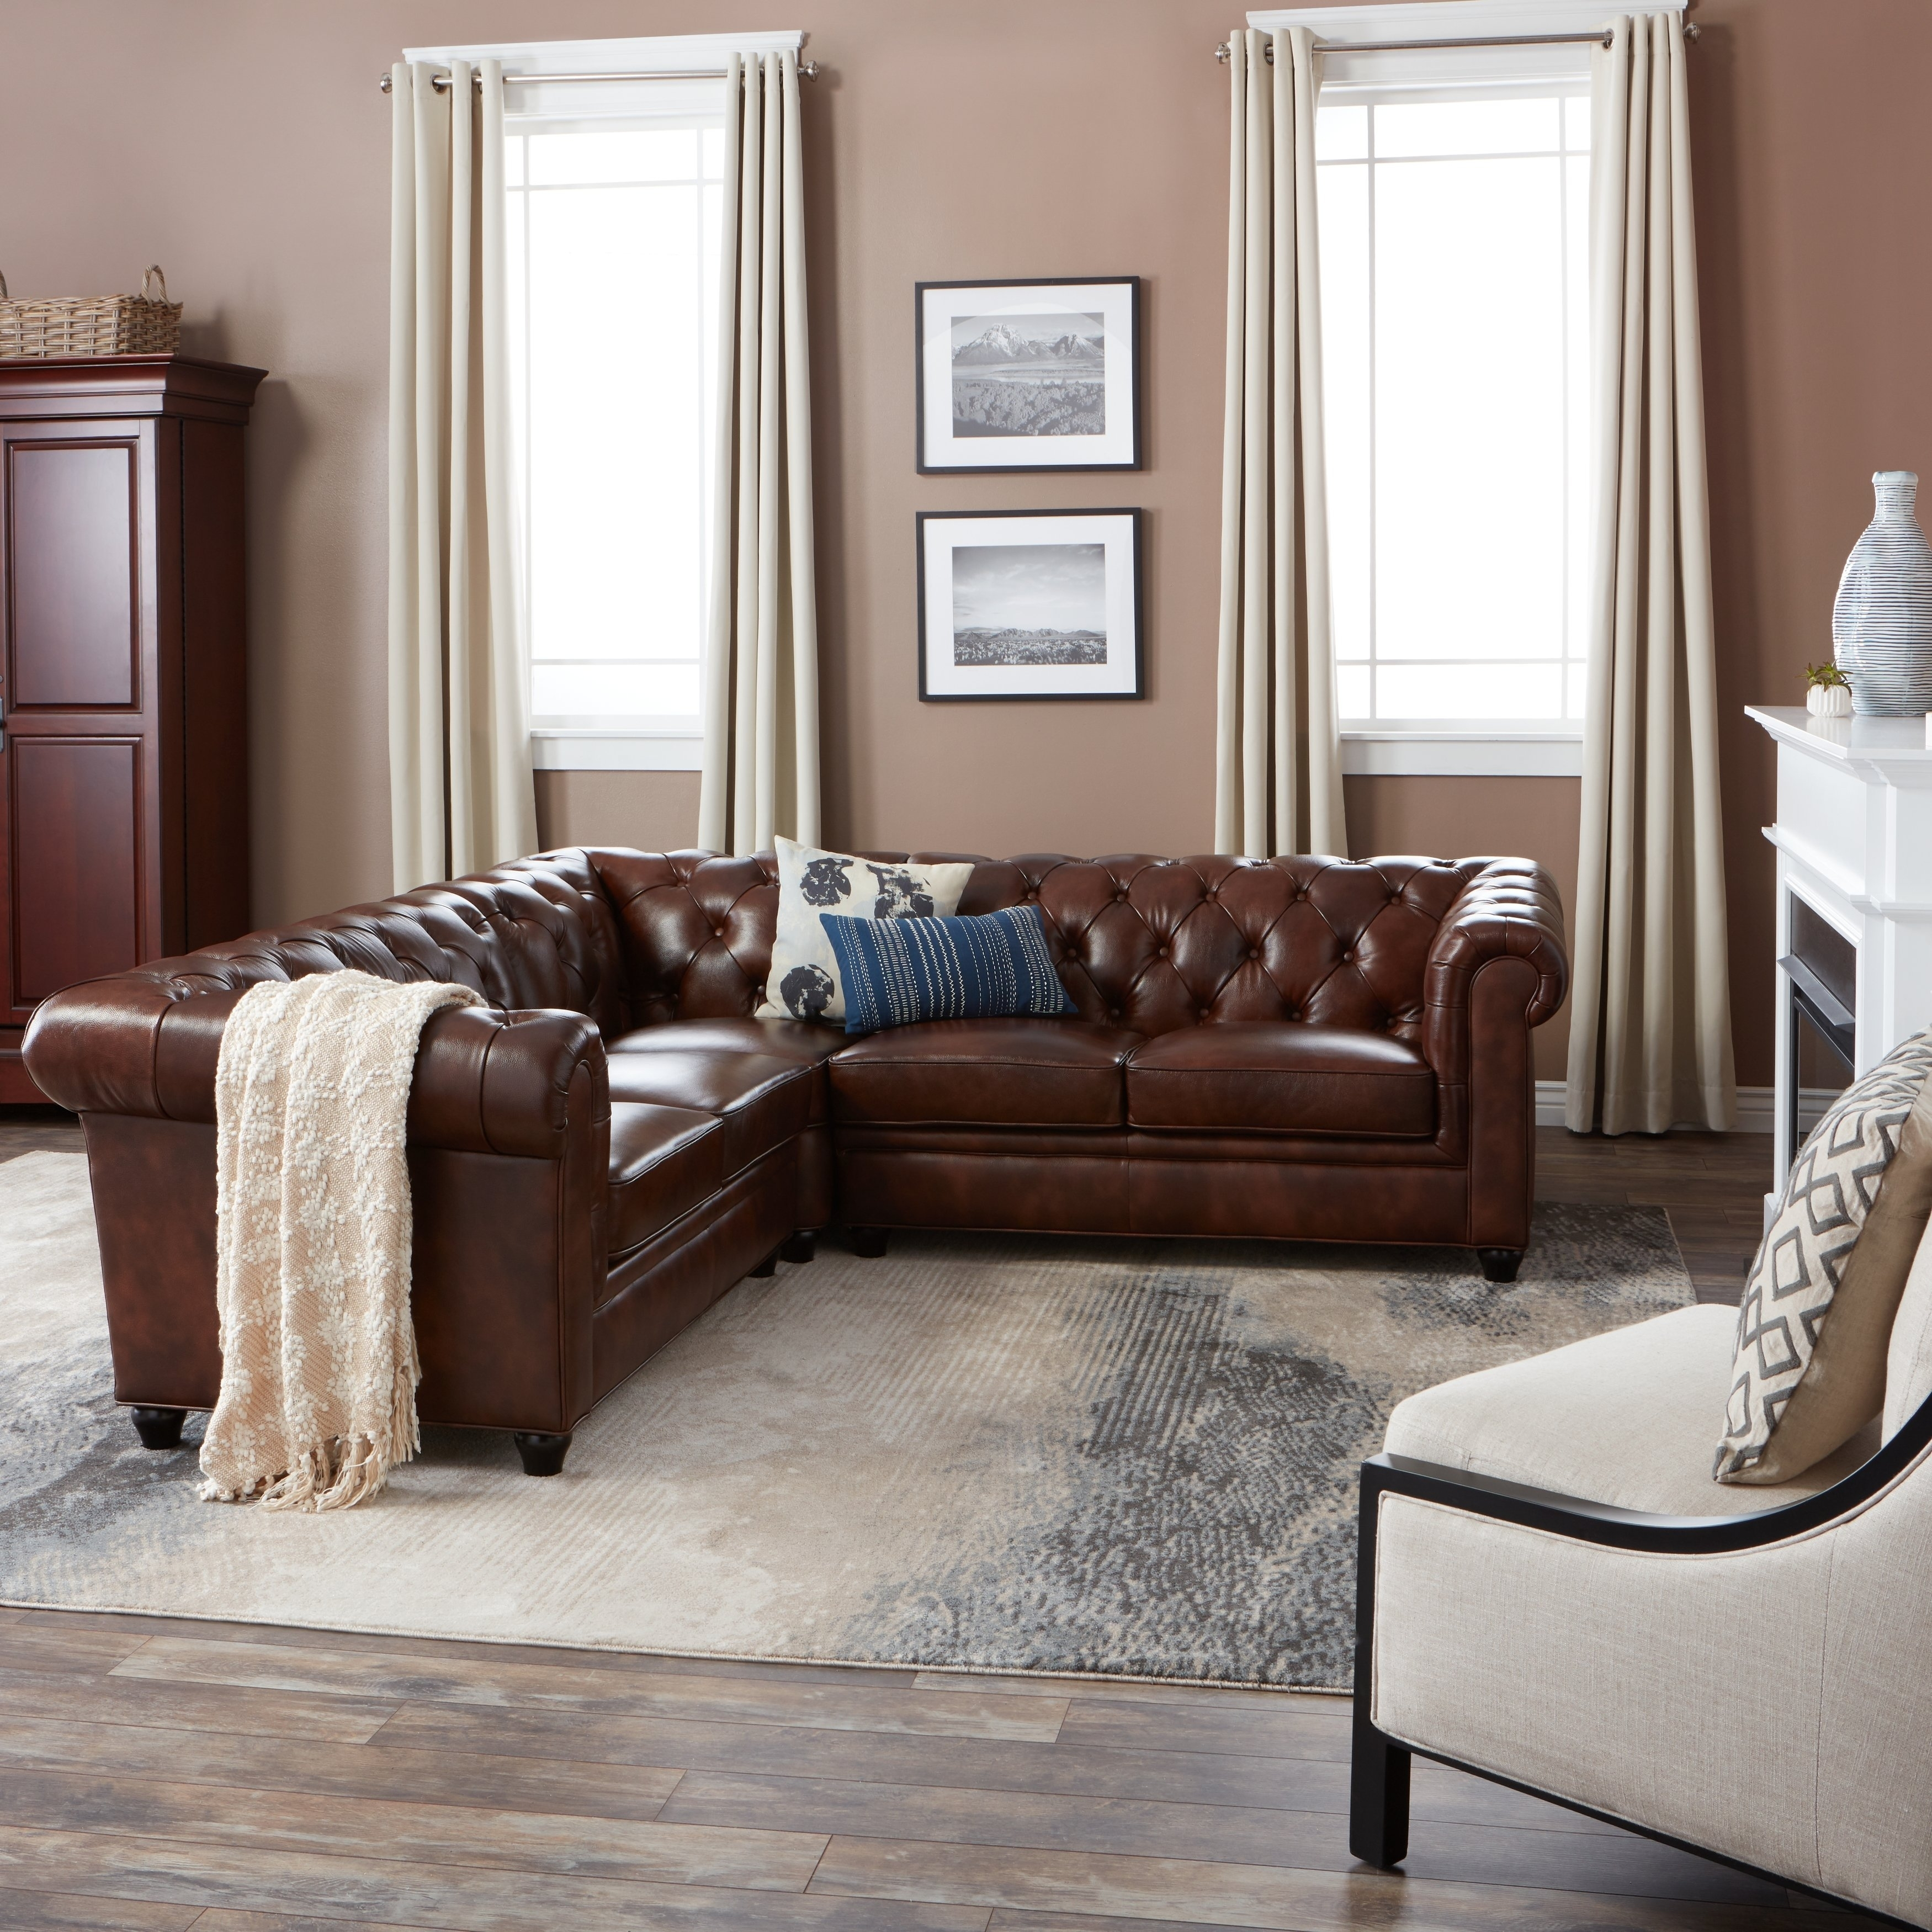 Shop Abbyson Tuscan Tufted Top Grain Leather 3 Piece Sectional Sofa For Haven Blue Steel 3 Piece Sectionals (View 17 of 25)